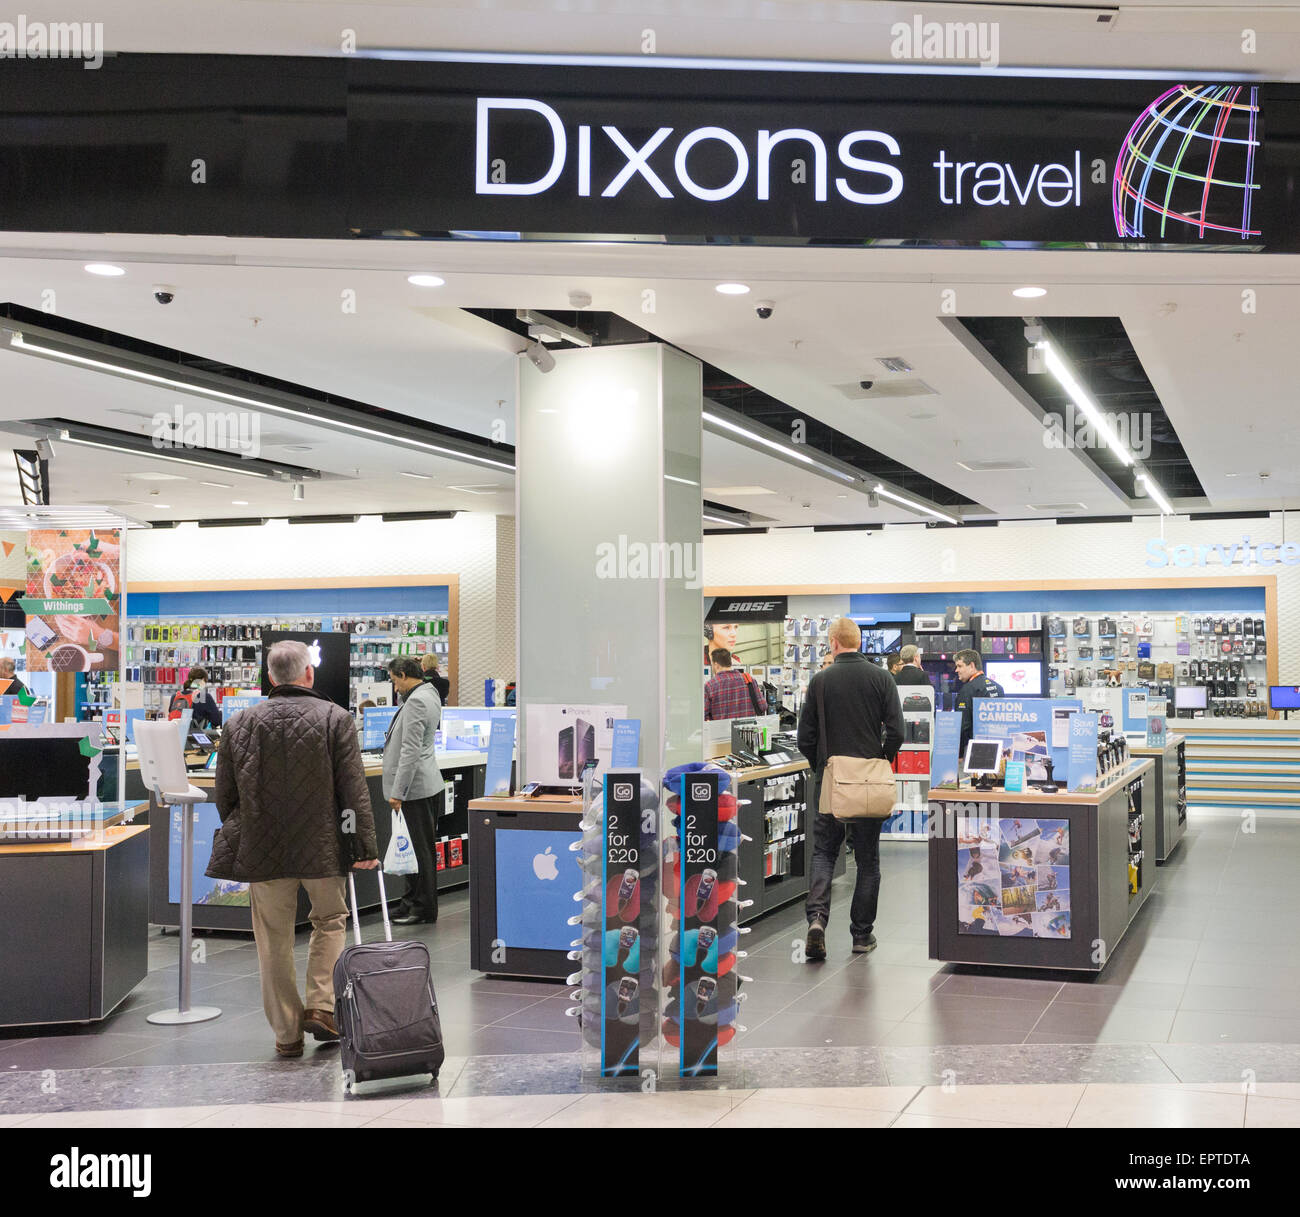 Dixons travel at Gatwick Airport in Britain Stock Photo